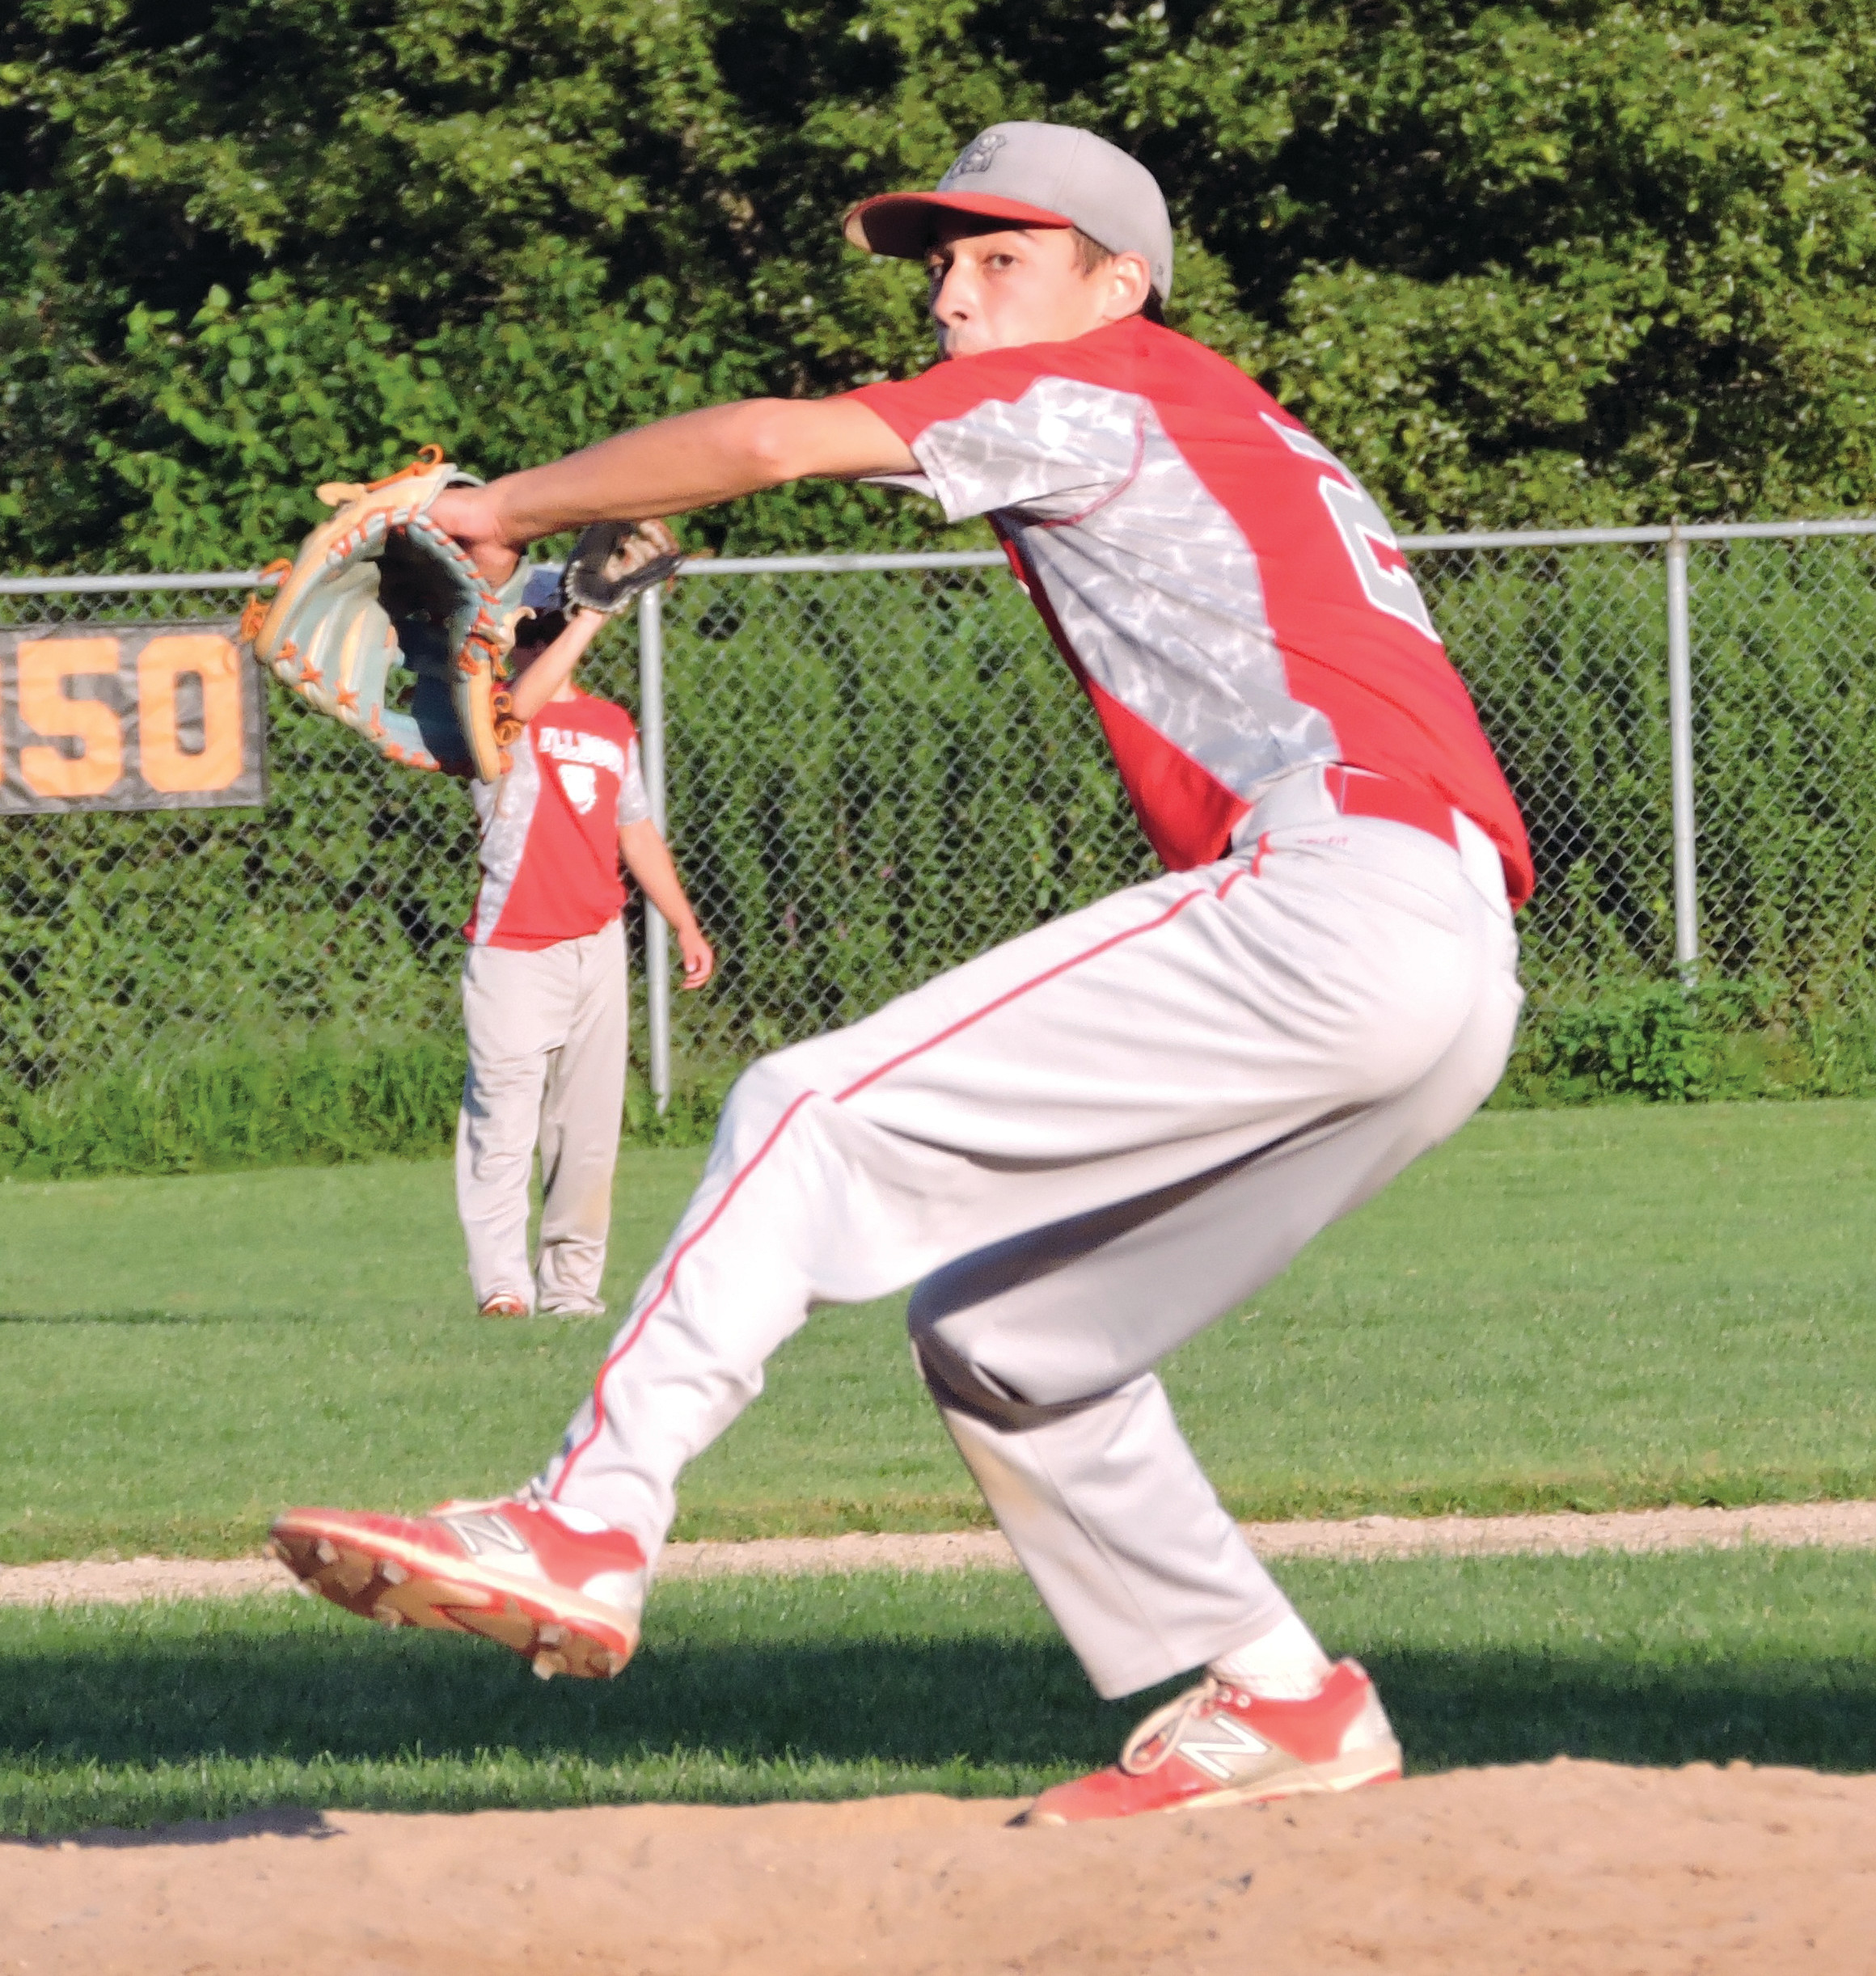 QUALITY START: Anthony Melise picked up the win on the mound for the Cranston Bulldogs on Monday night.